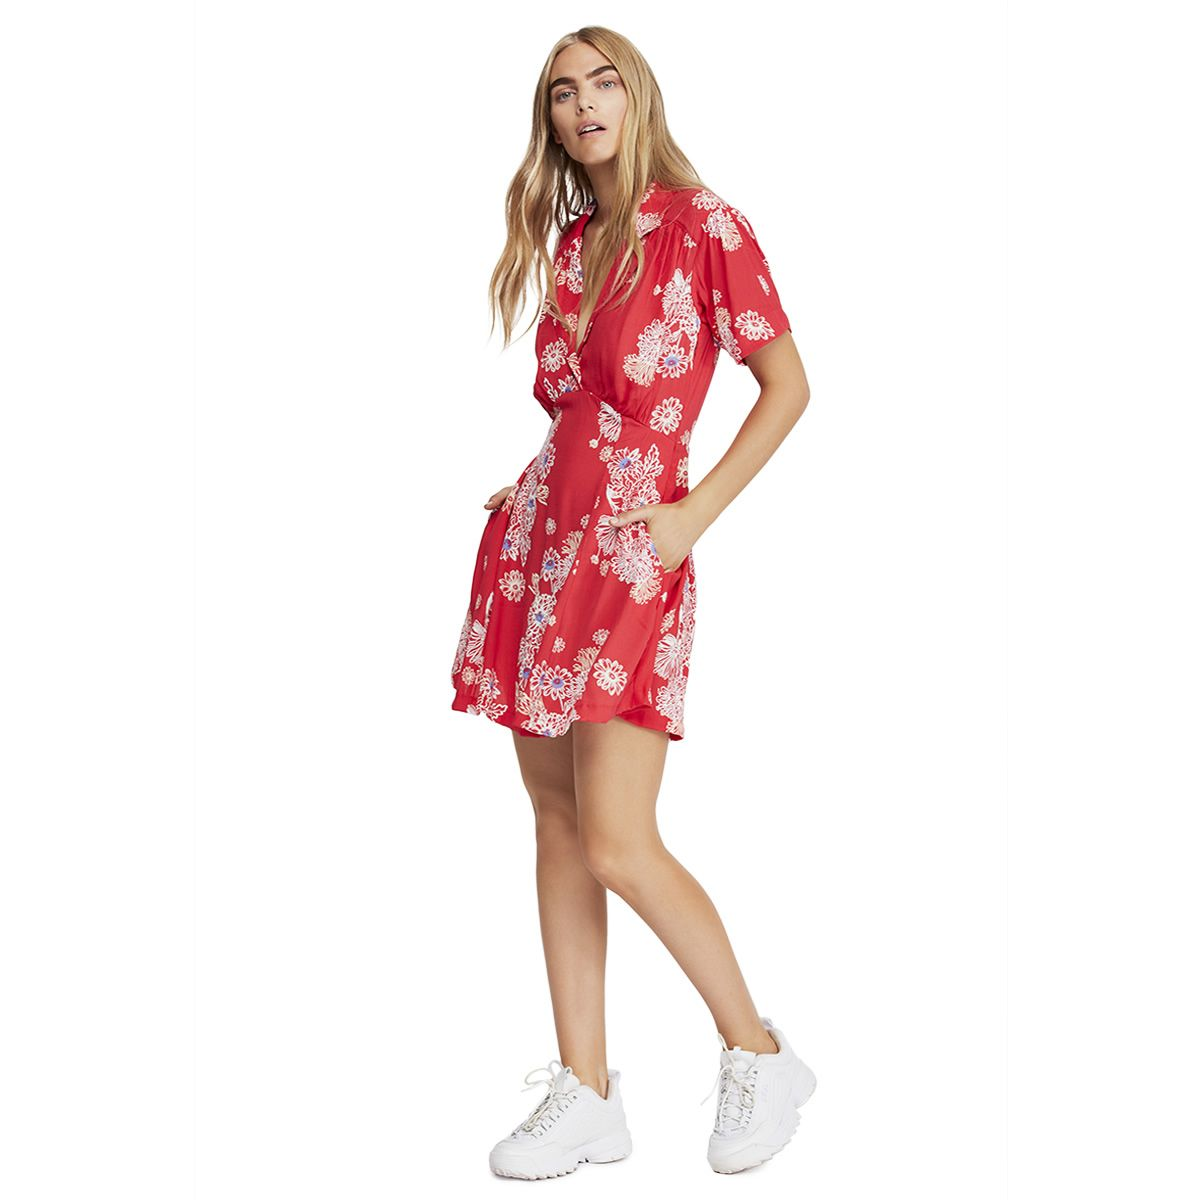 1e15a6b18cd9e Free People Dresses for Women - Macy's